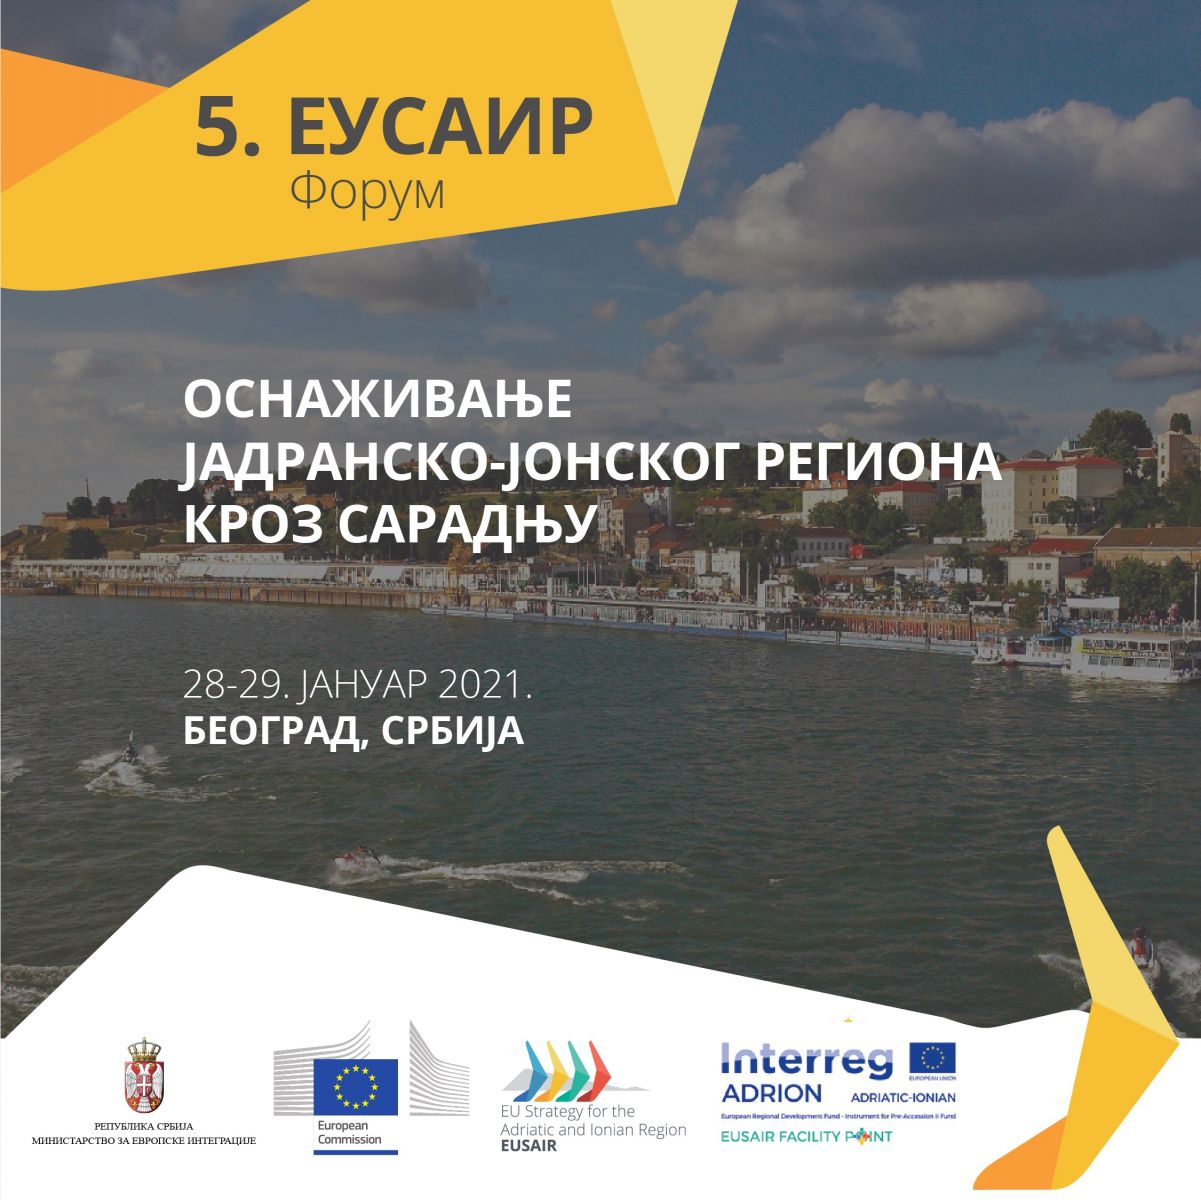 Fifth Annual Forum of the EU Strategy for the Adriatic-Ionian Region (EUSAIR)